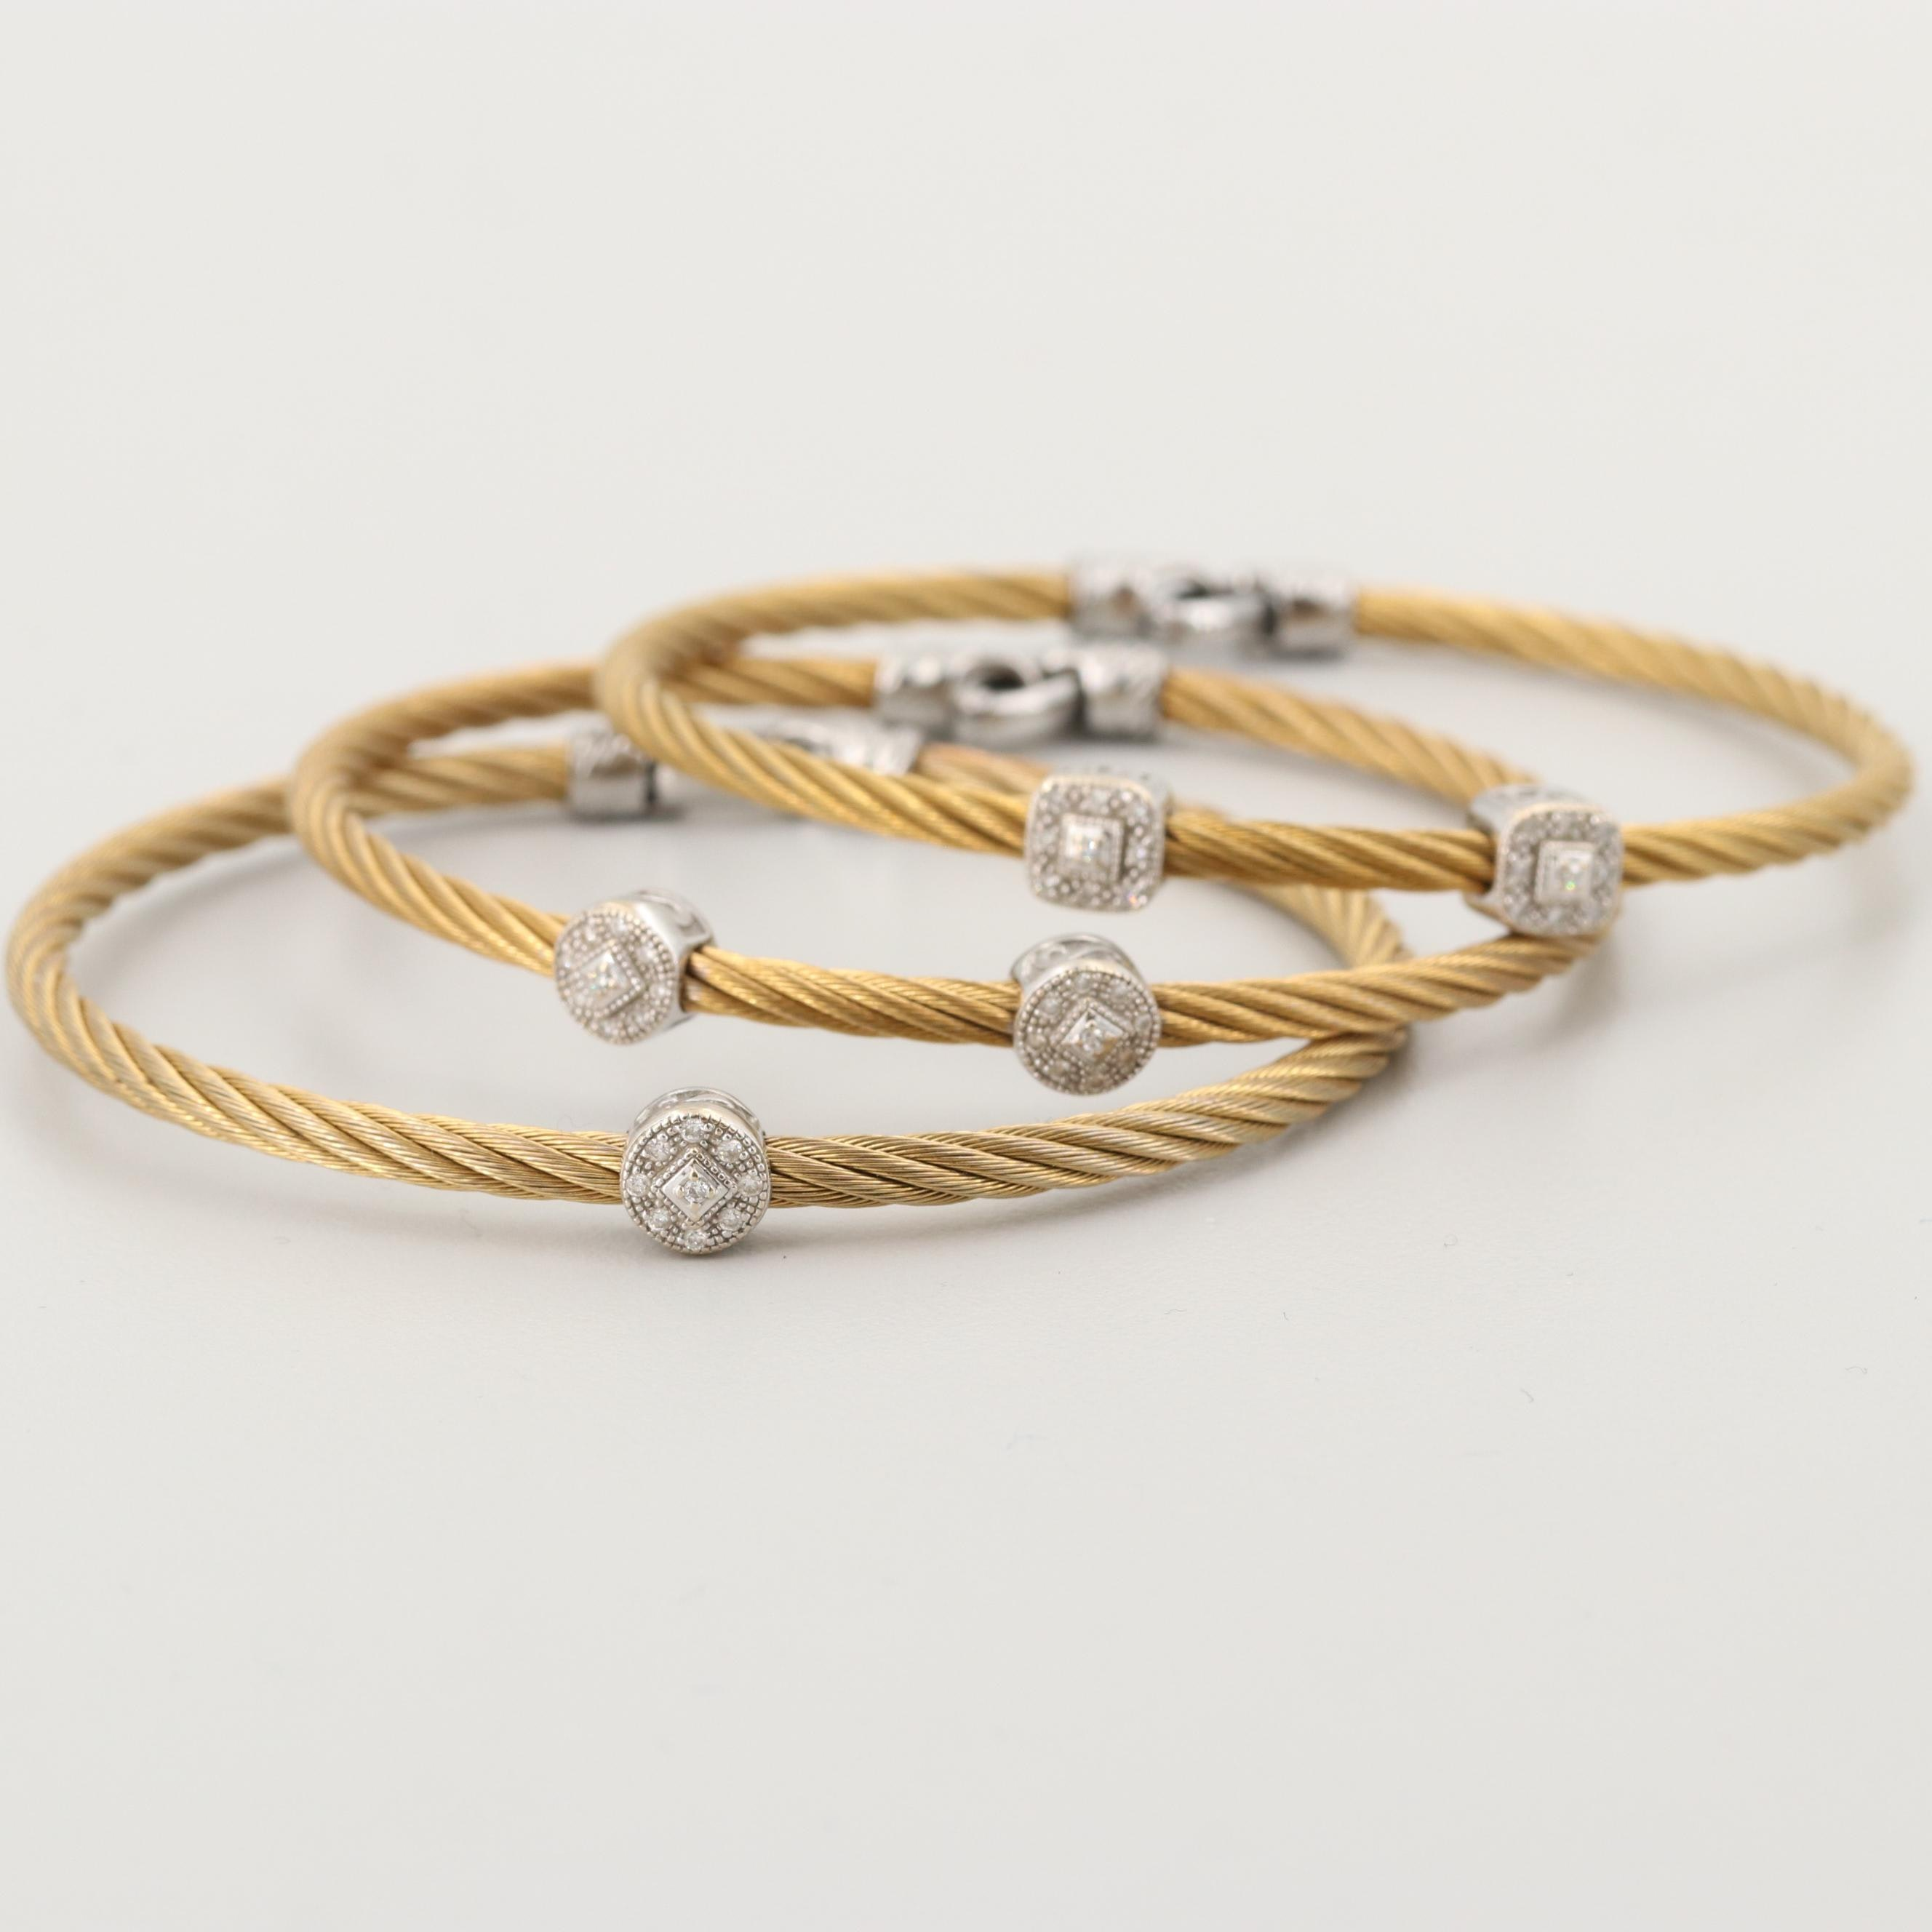 Charriol Stainless Steel Bracelets with 18K White Gold and Diamond Accents